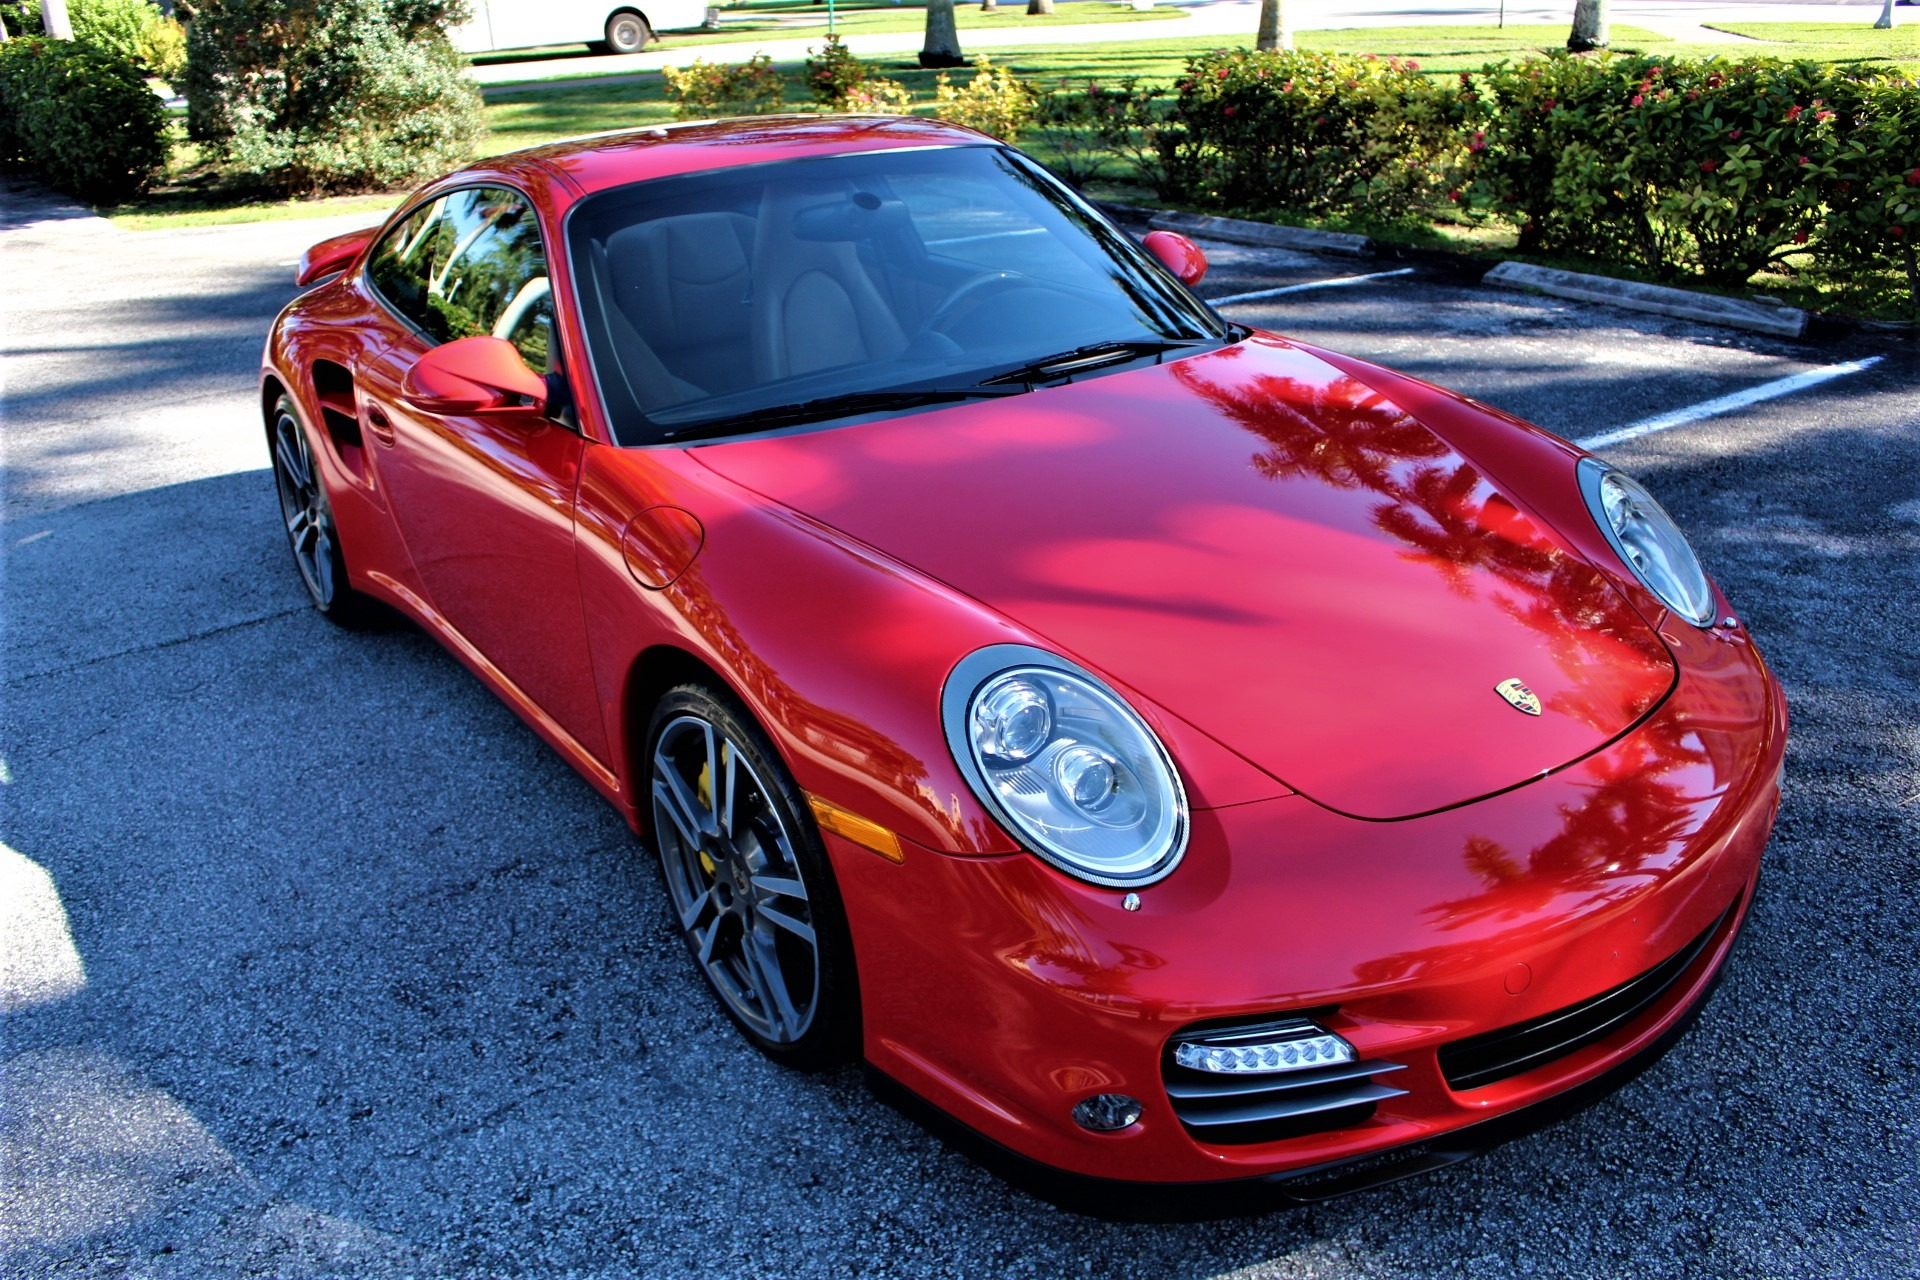 Used 2012 Porsche 911 Turbo for sale $94,850 at The Gables Sports Cars in Miami FL 33146 3